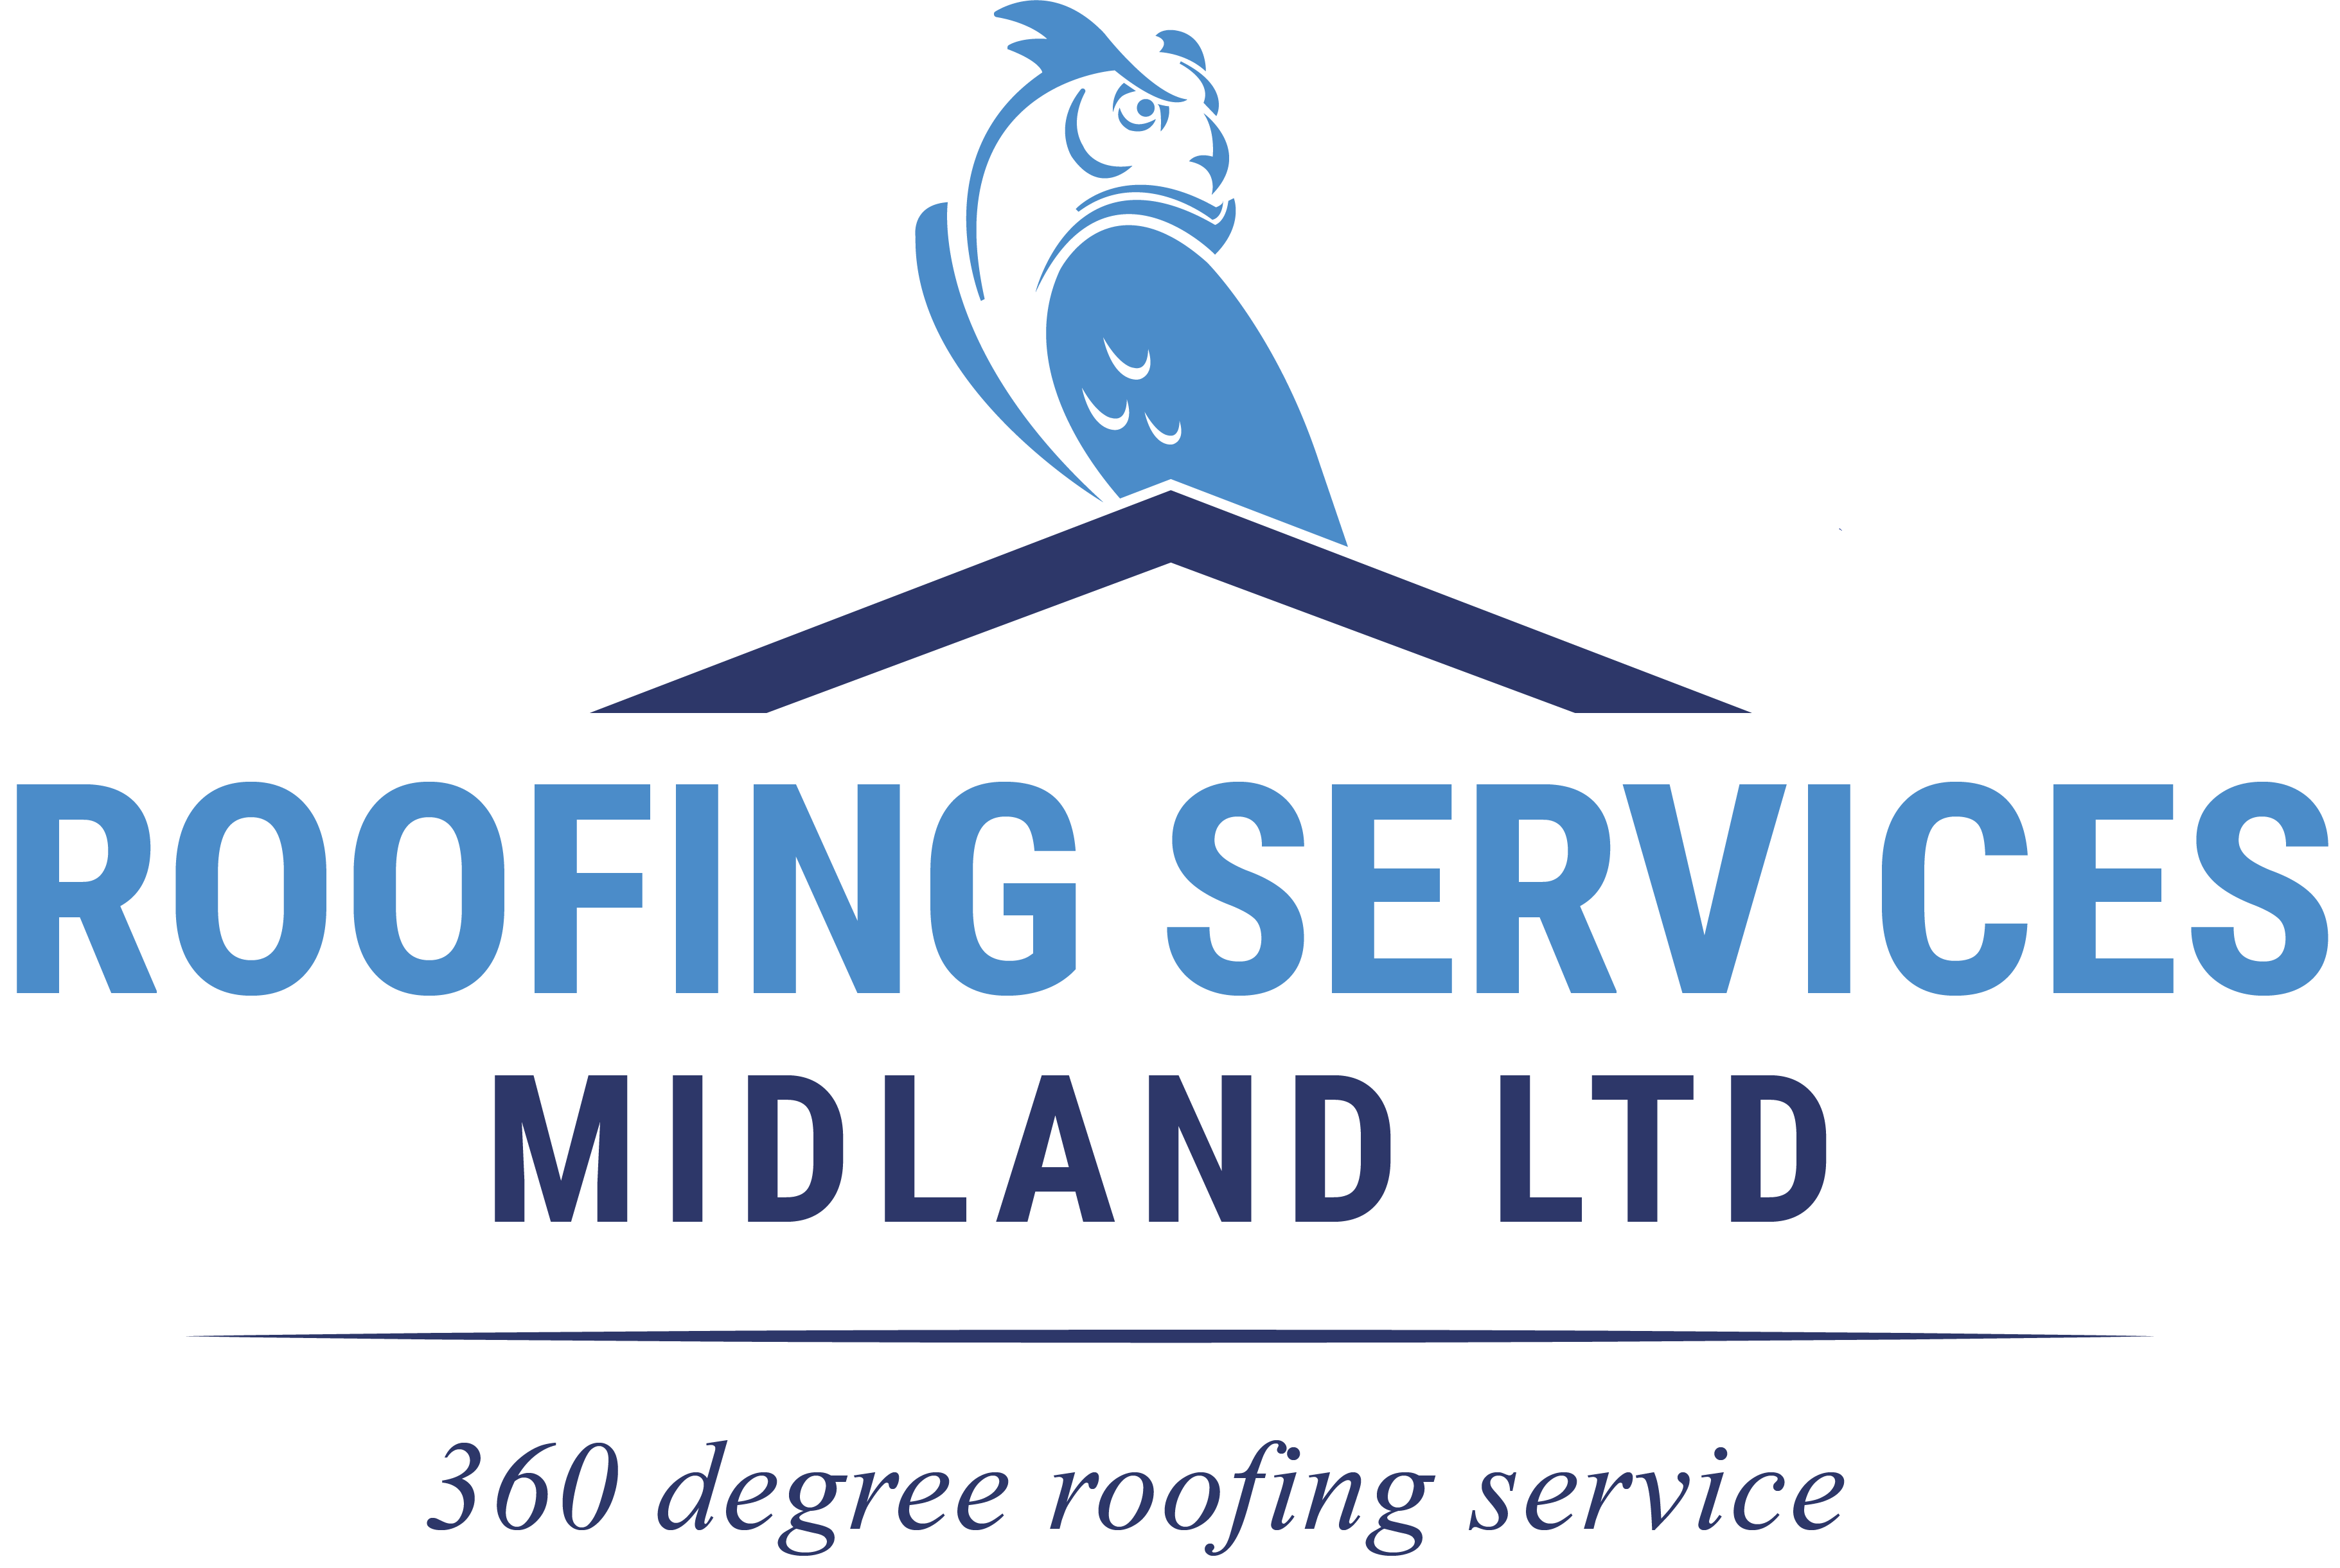 Roofing Services Midland Ltd